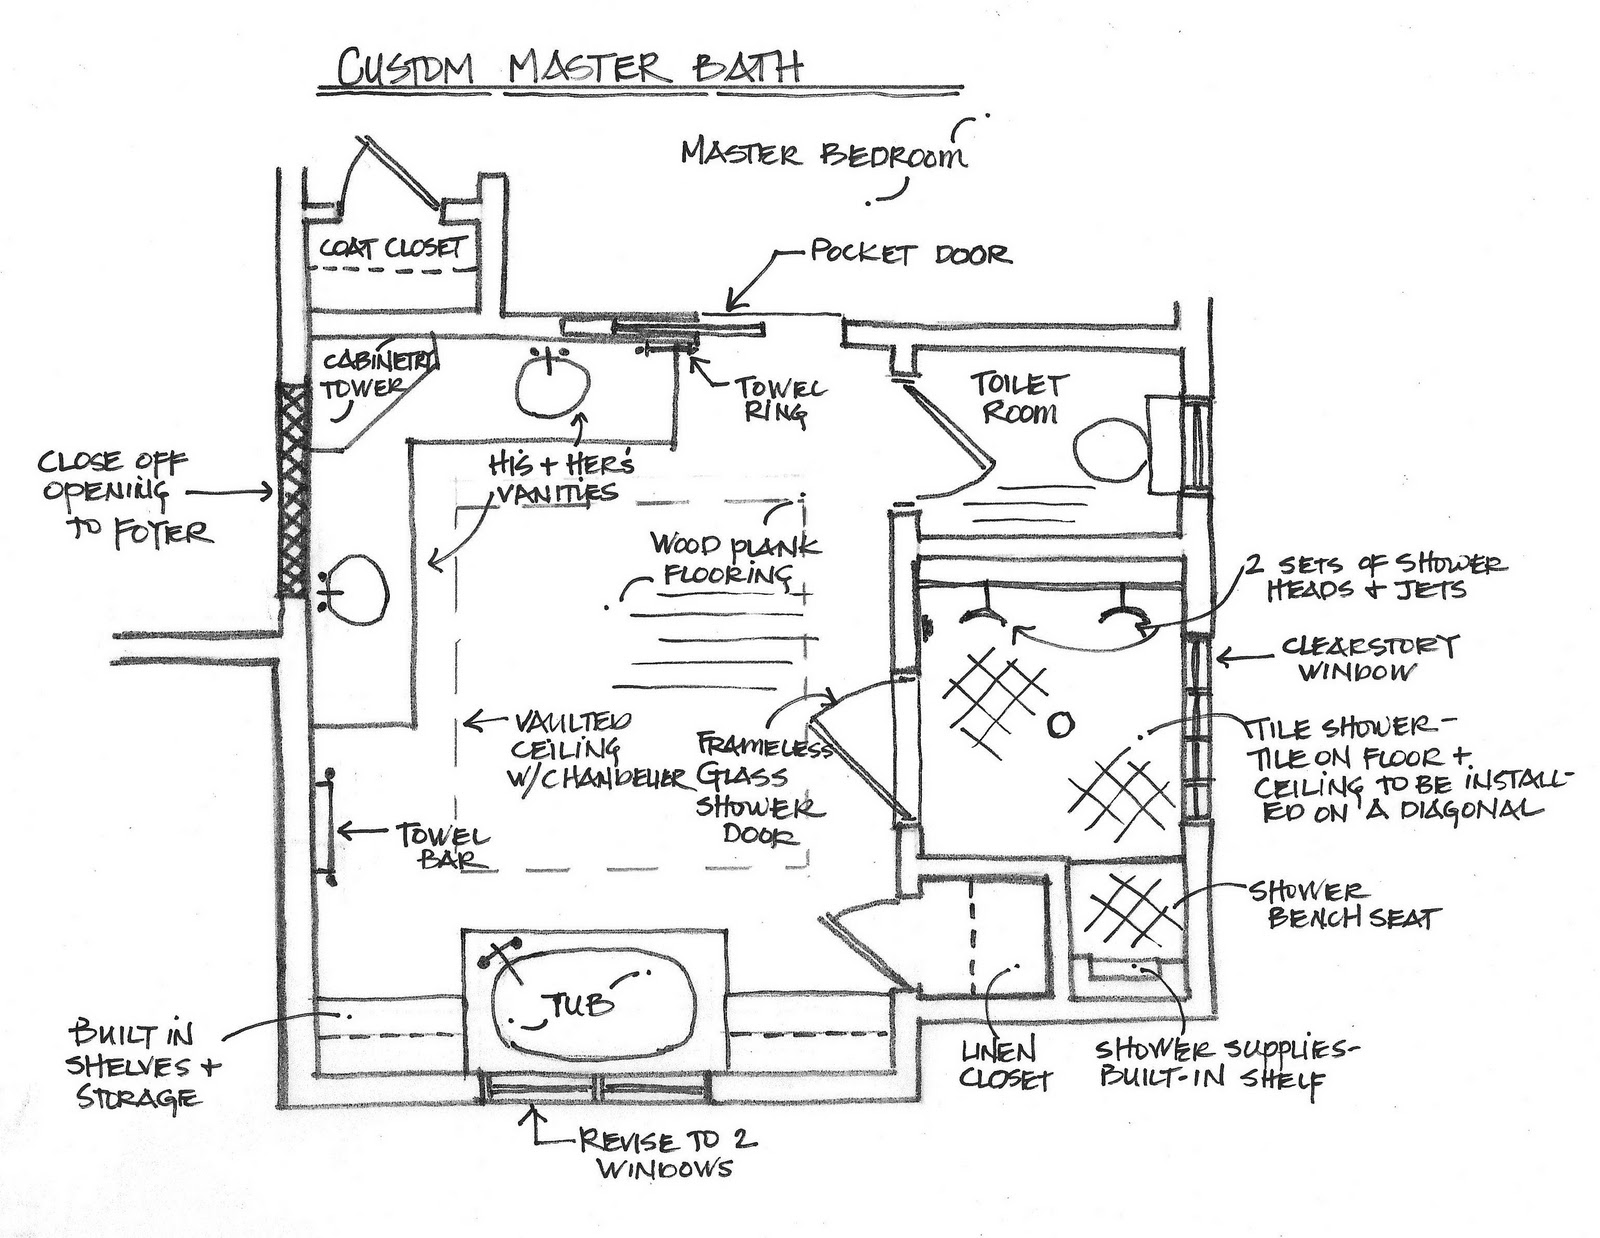 Master bathroom layouts for small spaces home decorating for Master bath floor plans